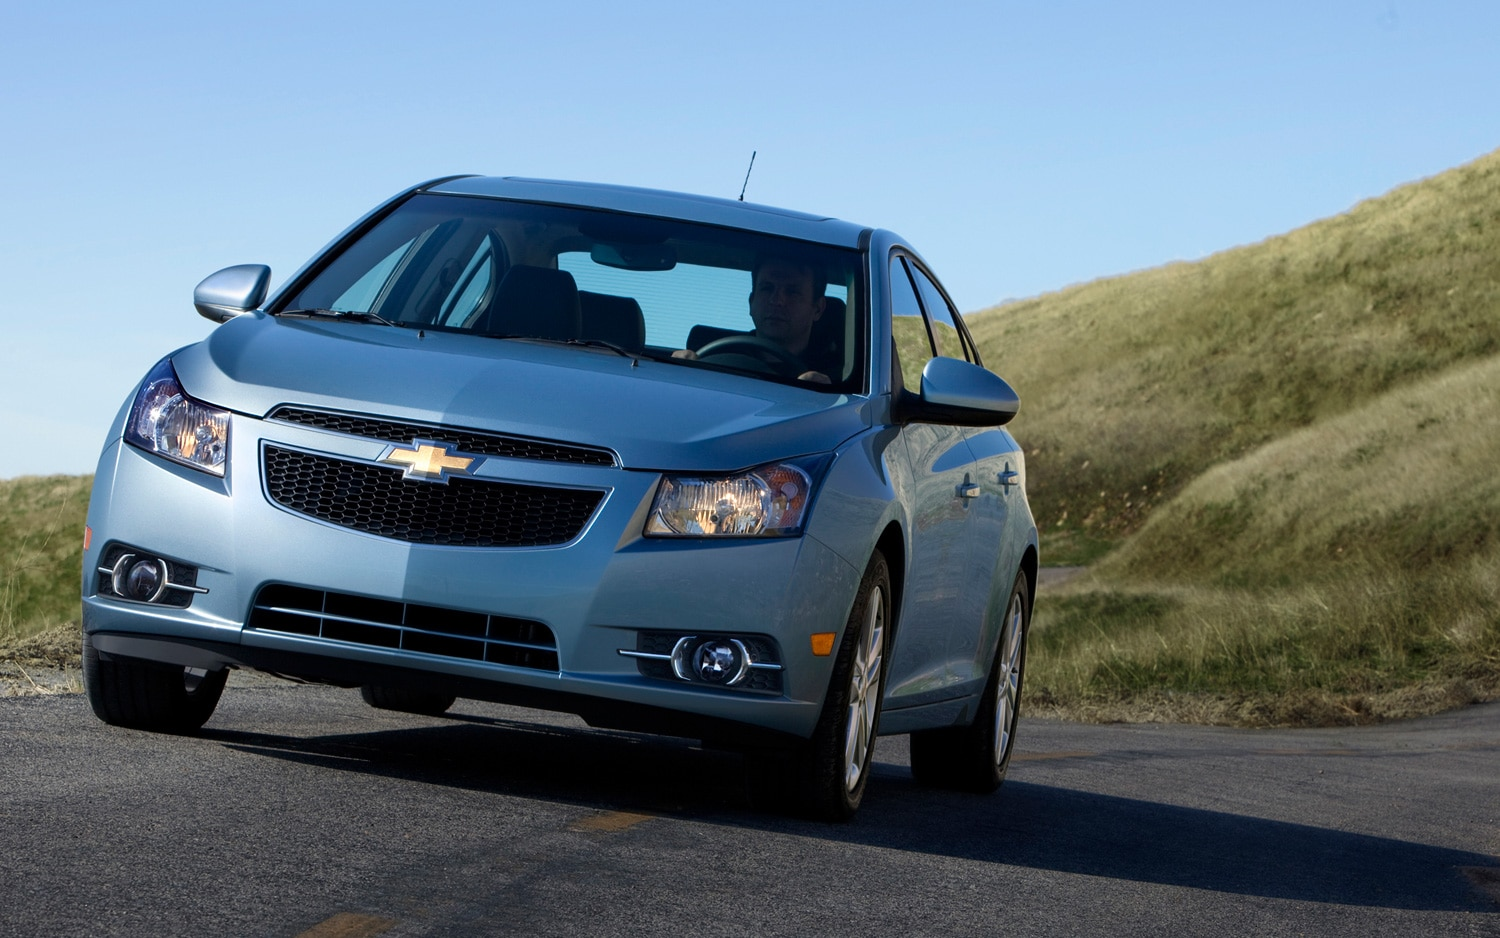 2013 Chevrolet Cruze Receives Single-Stage Vented Airbag, Five ...